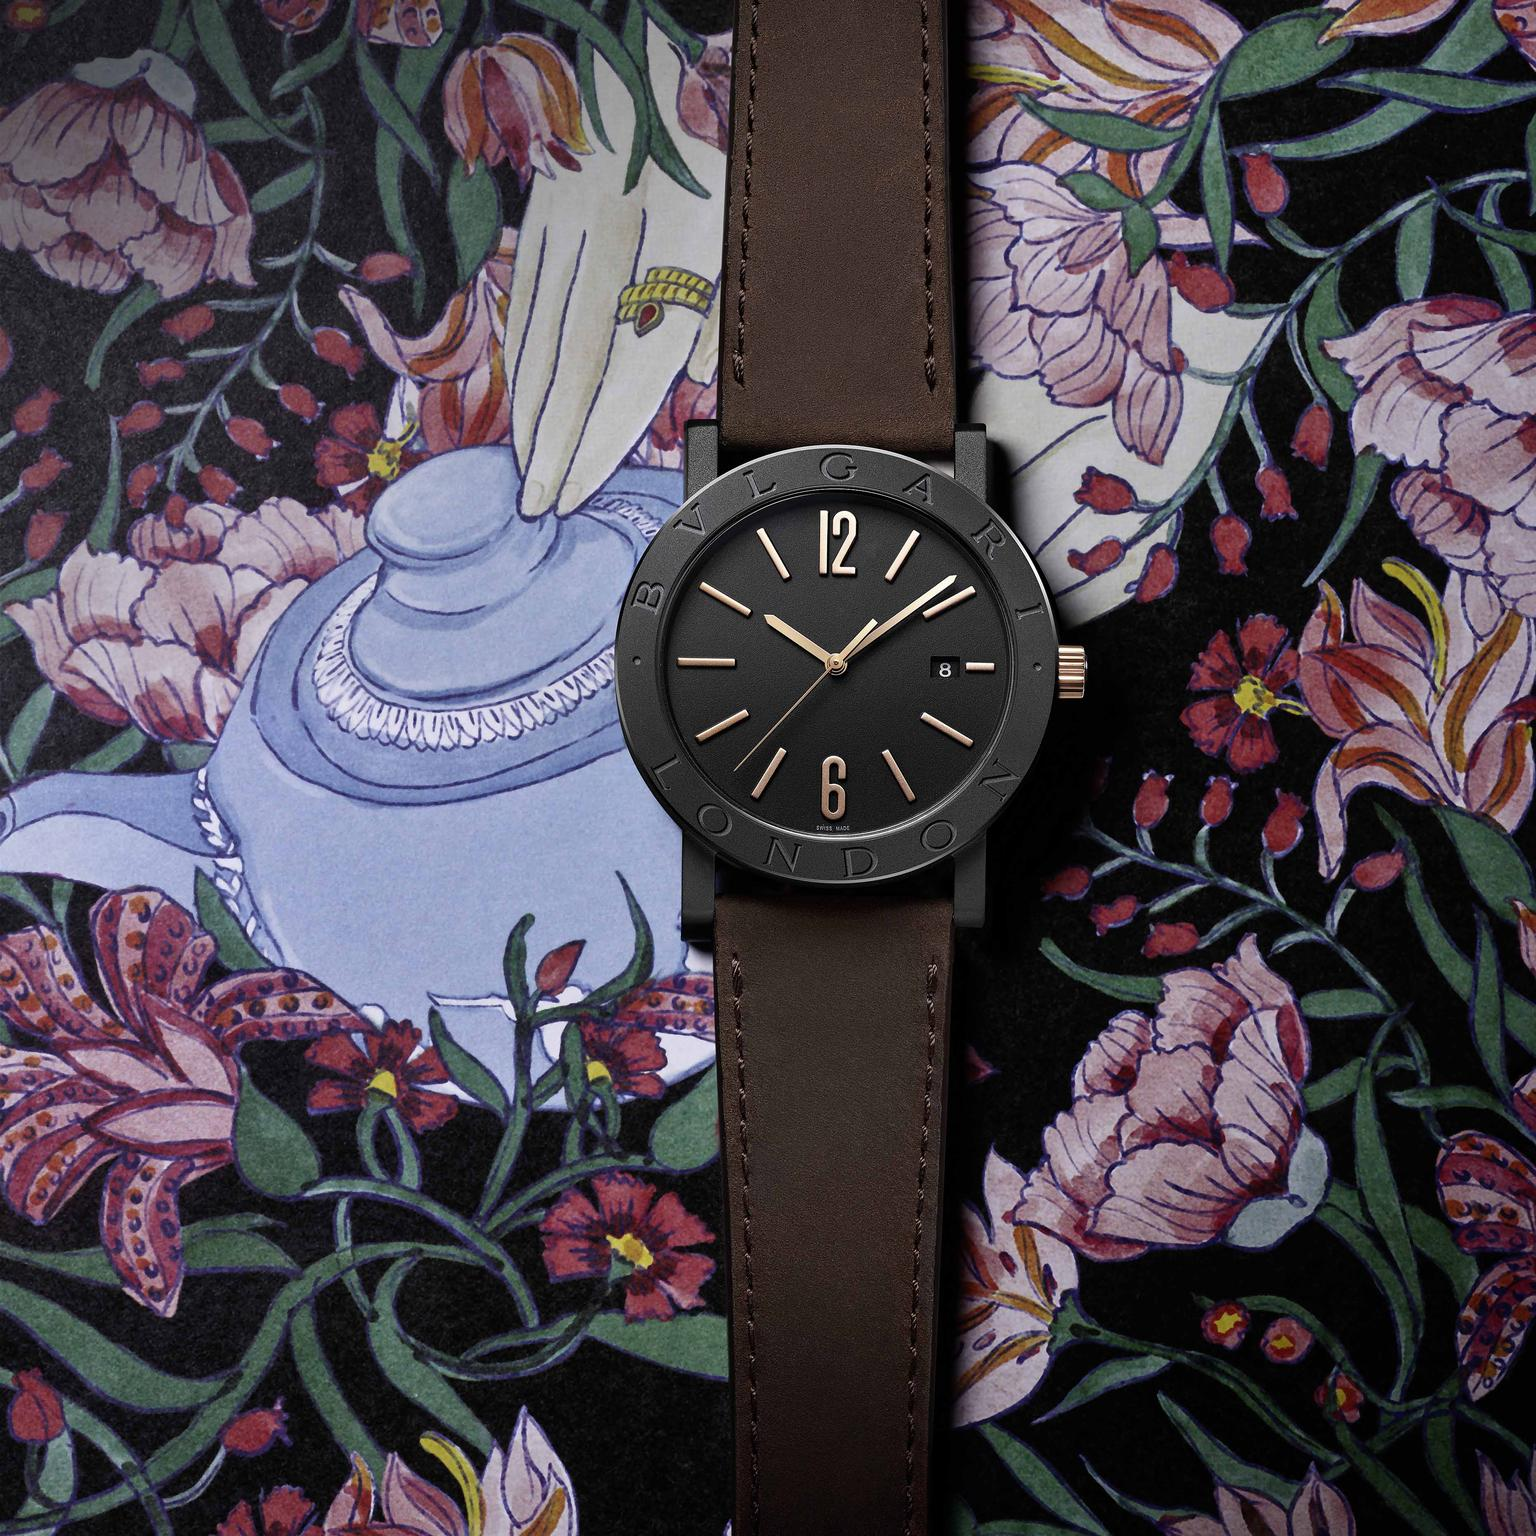 Bulgari BB city watch London illustration